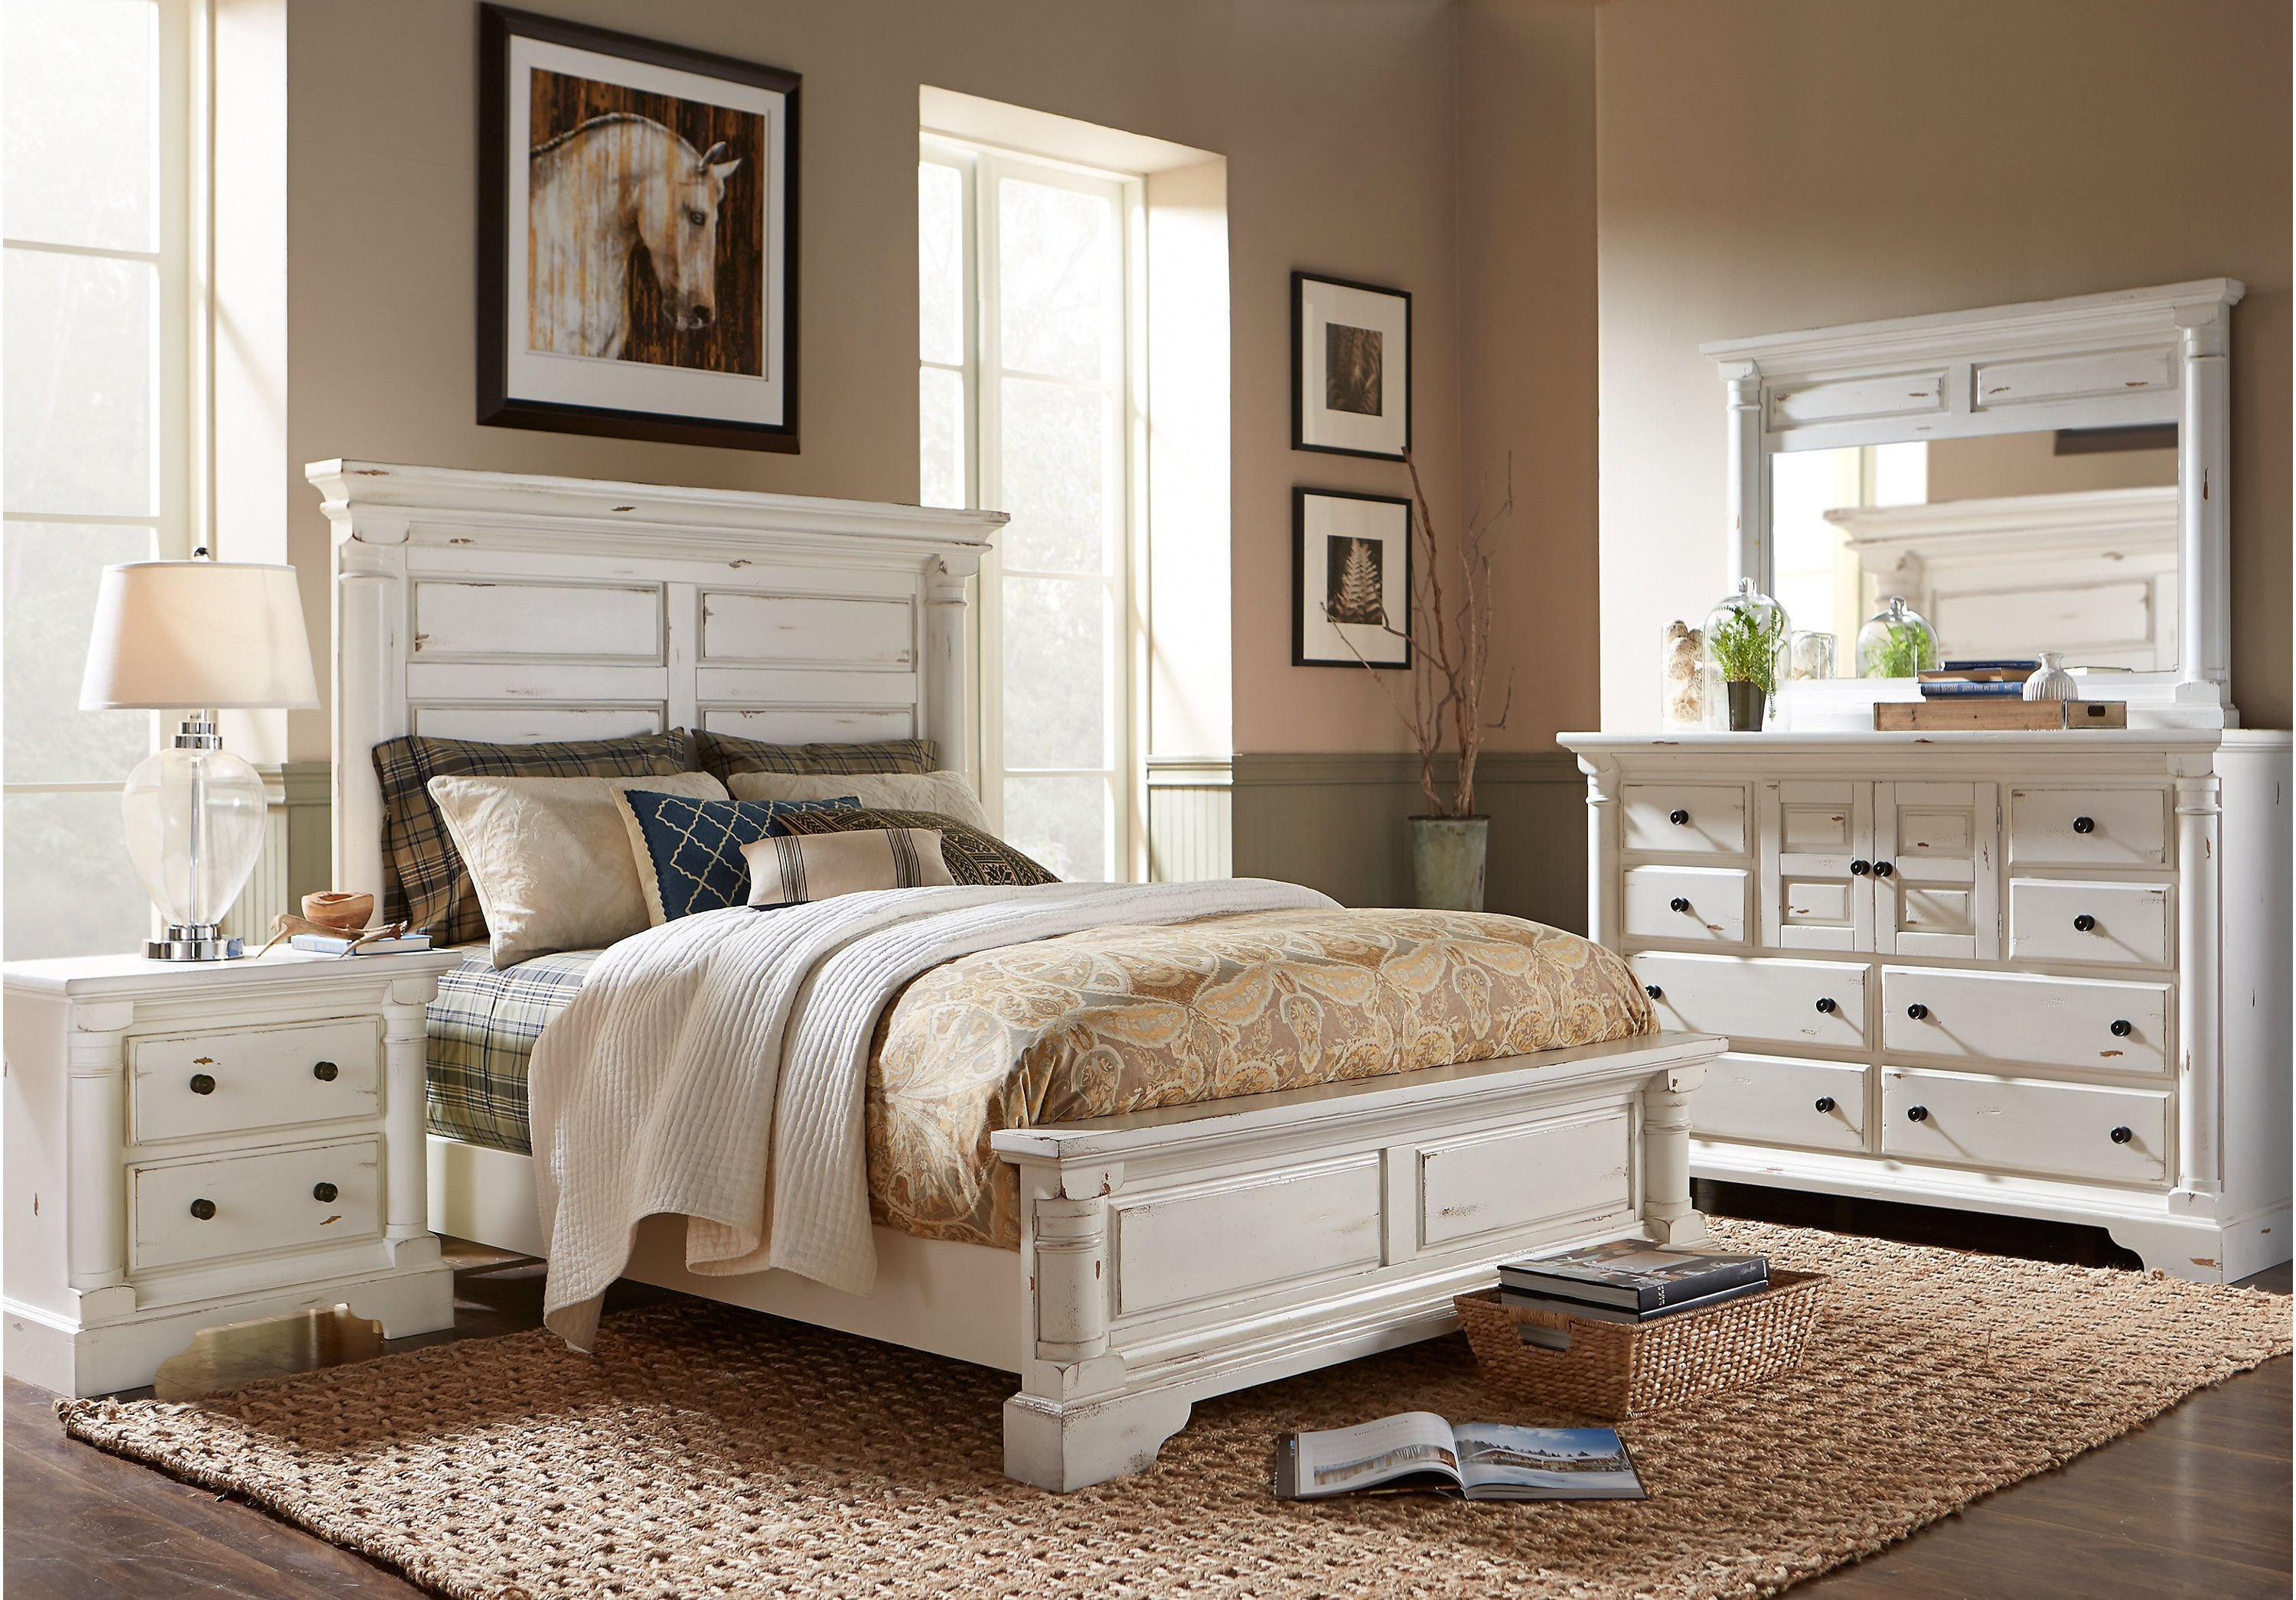 Rooms to Go Girl Bedroom Set New Bedroom Charming Roomstogokids with Beautiful Decor for